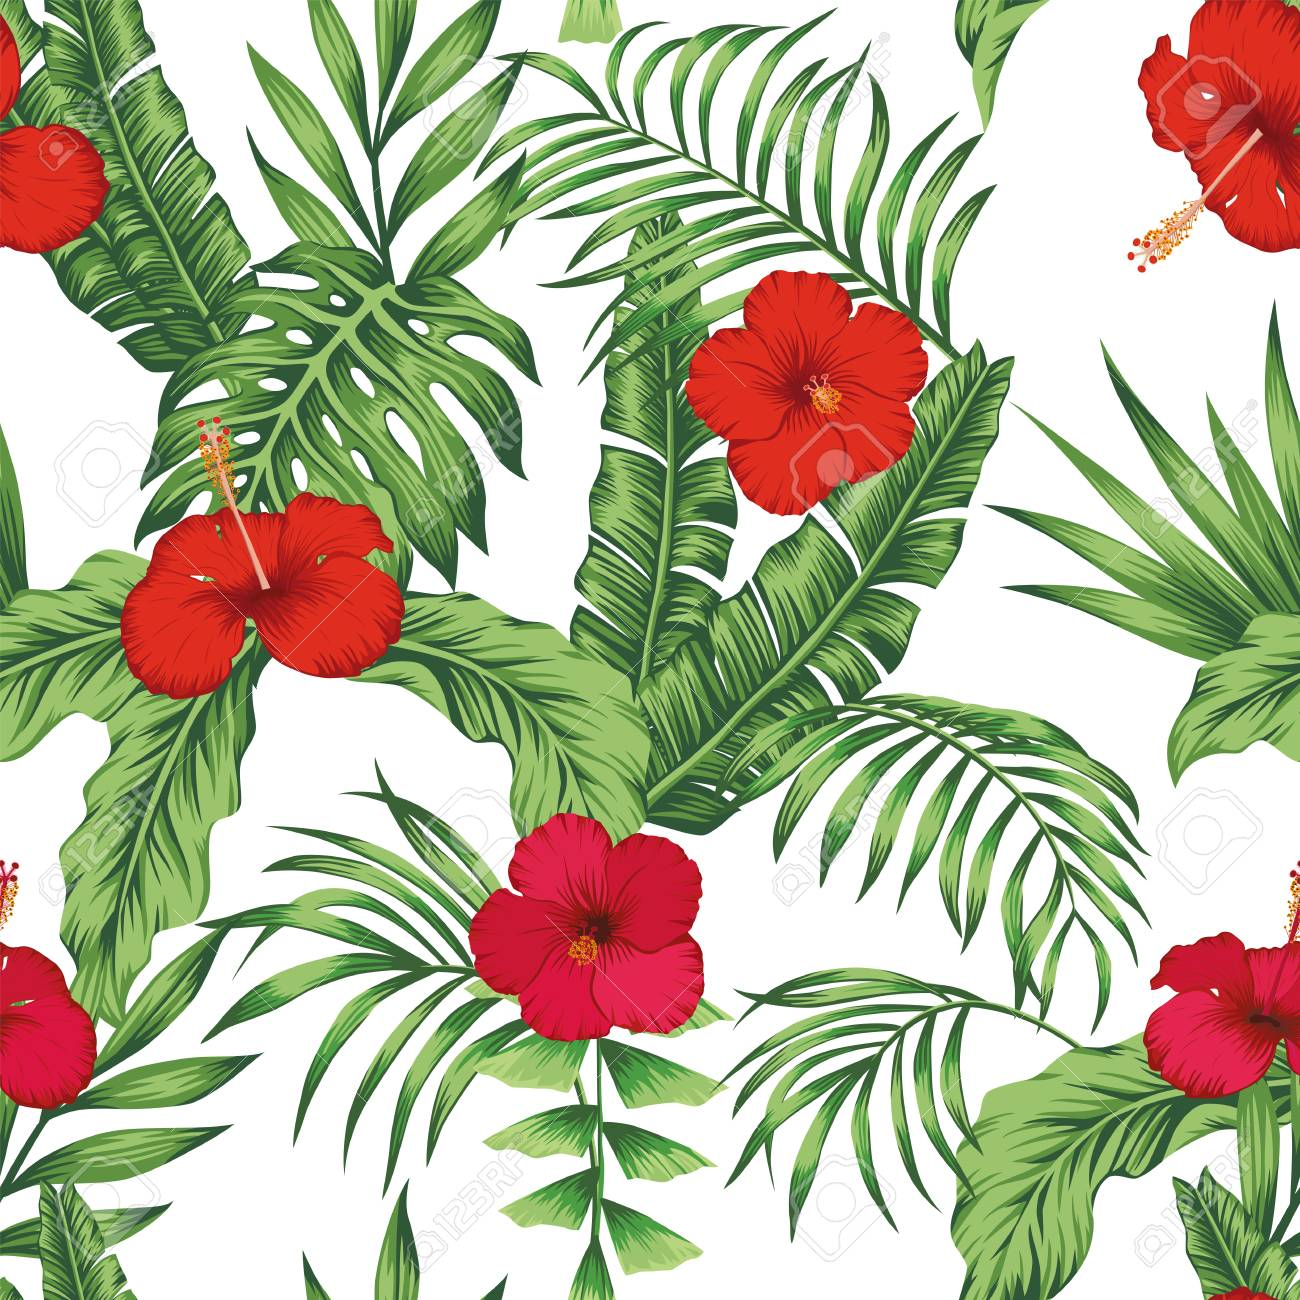 Exotic tropical flowers pink and red hibiscus, green monstera, palm leaves pattern seamless on the white background. Beach vector wallpaper - 125794444